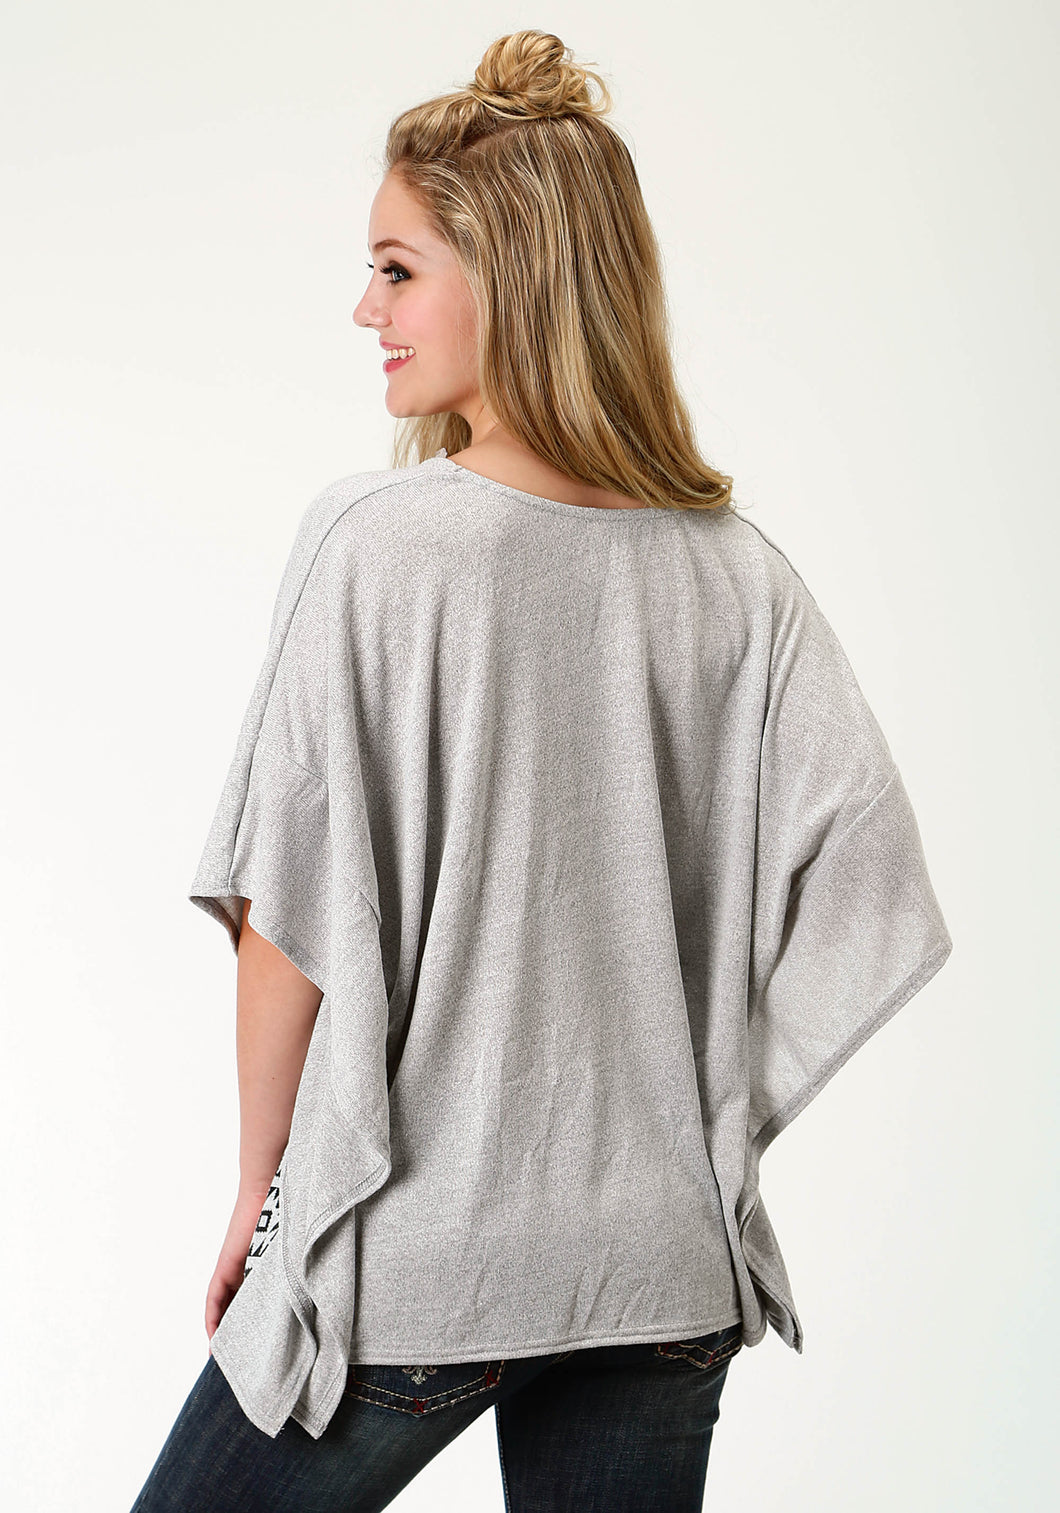 Five Star- Summer Ii 5star Womens Sleeveless Shirt 1774 Sweater Knit Poncho